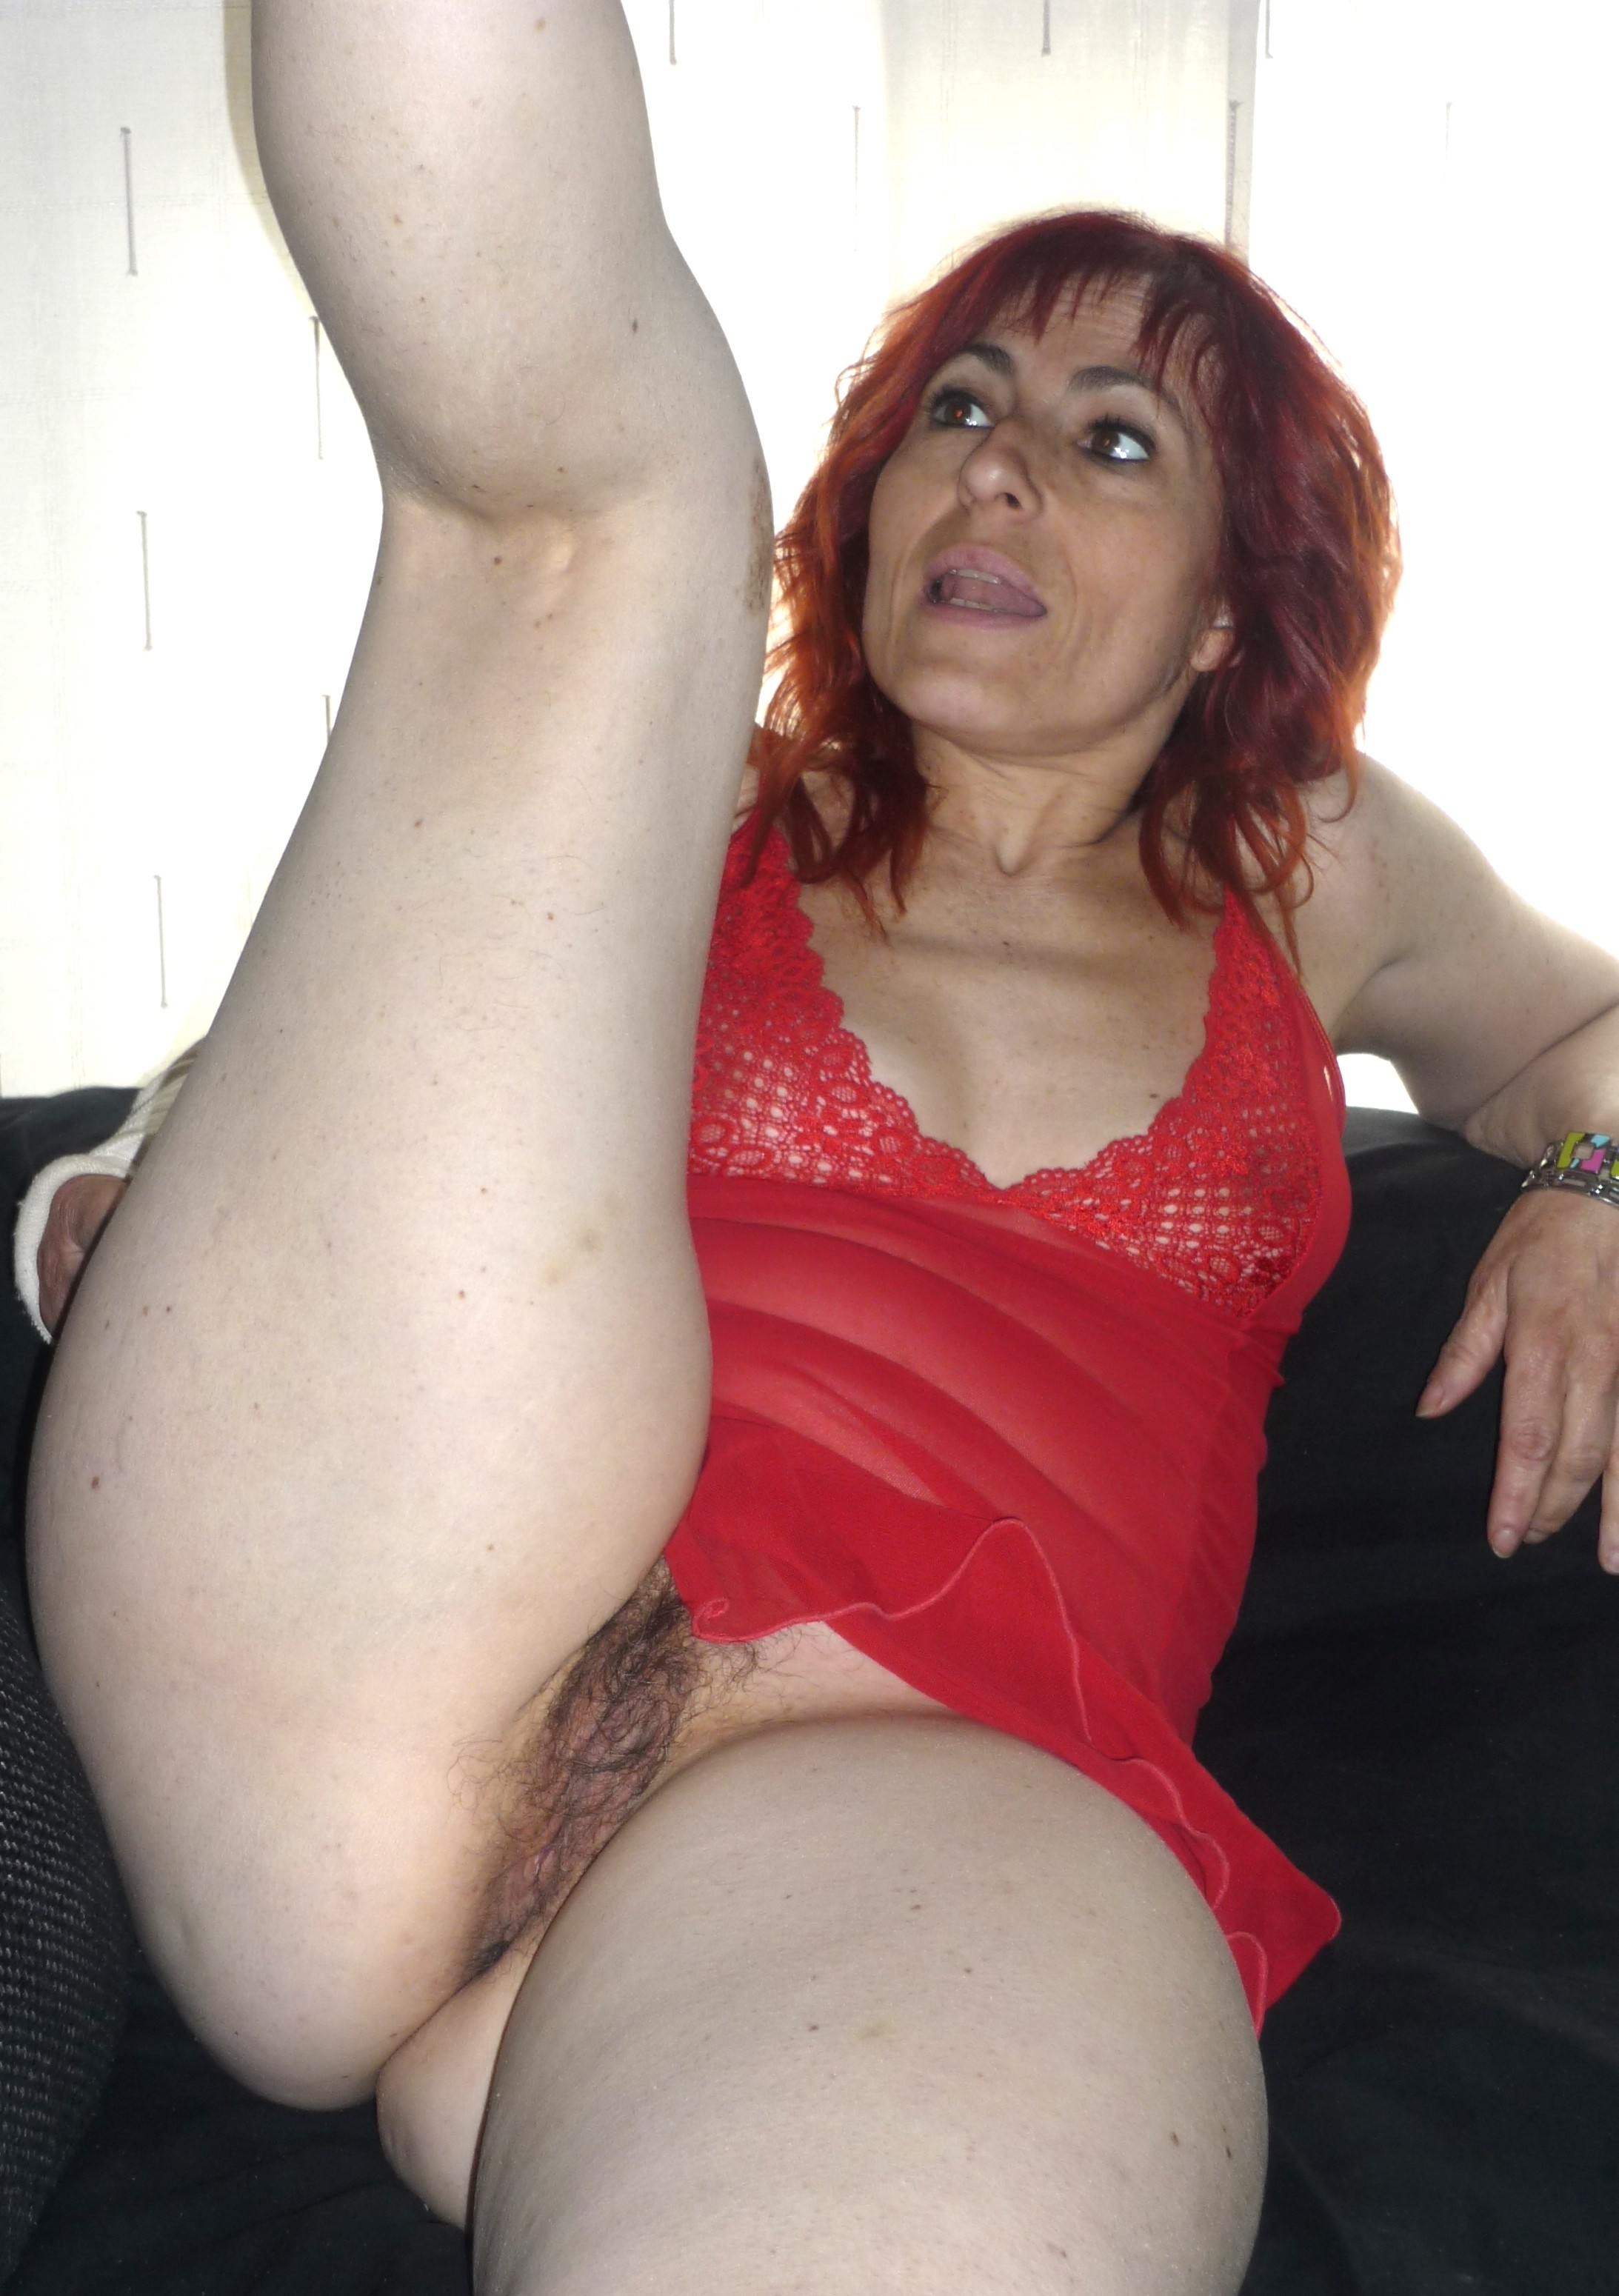 Such casual concurrence car deepthroat black dick cum remarkable, this valuable opinion